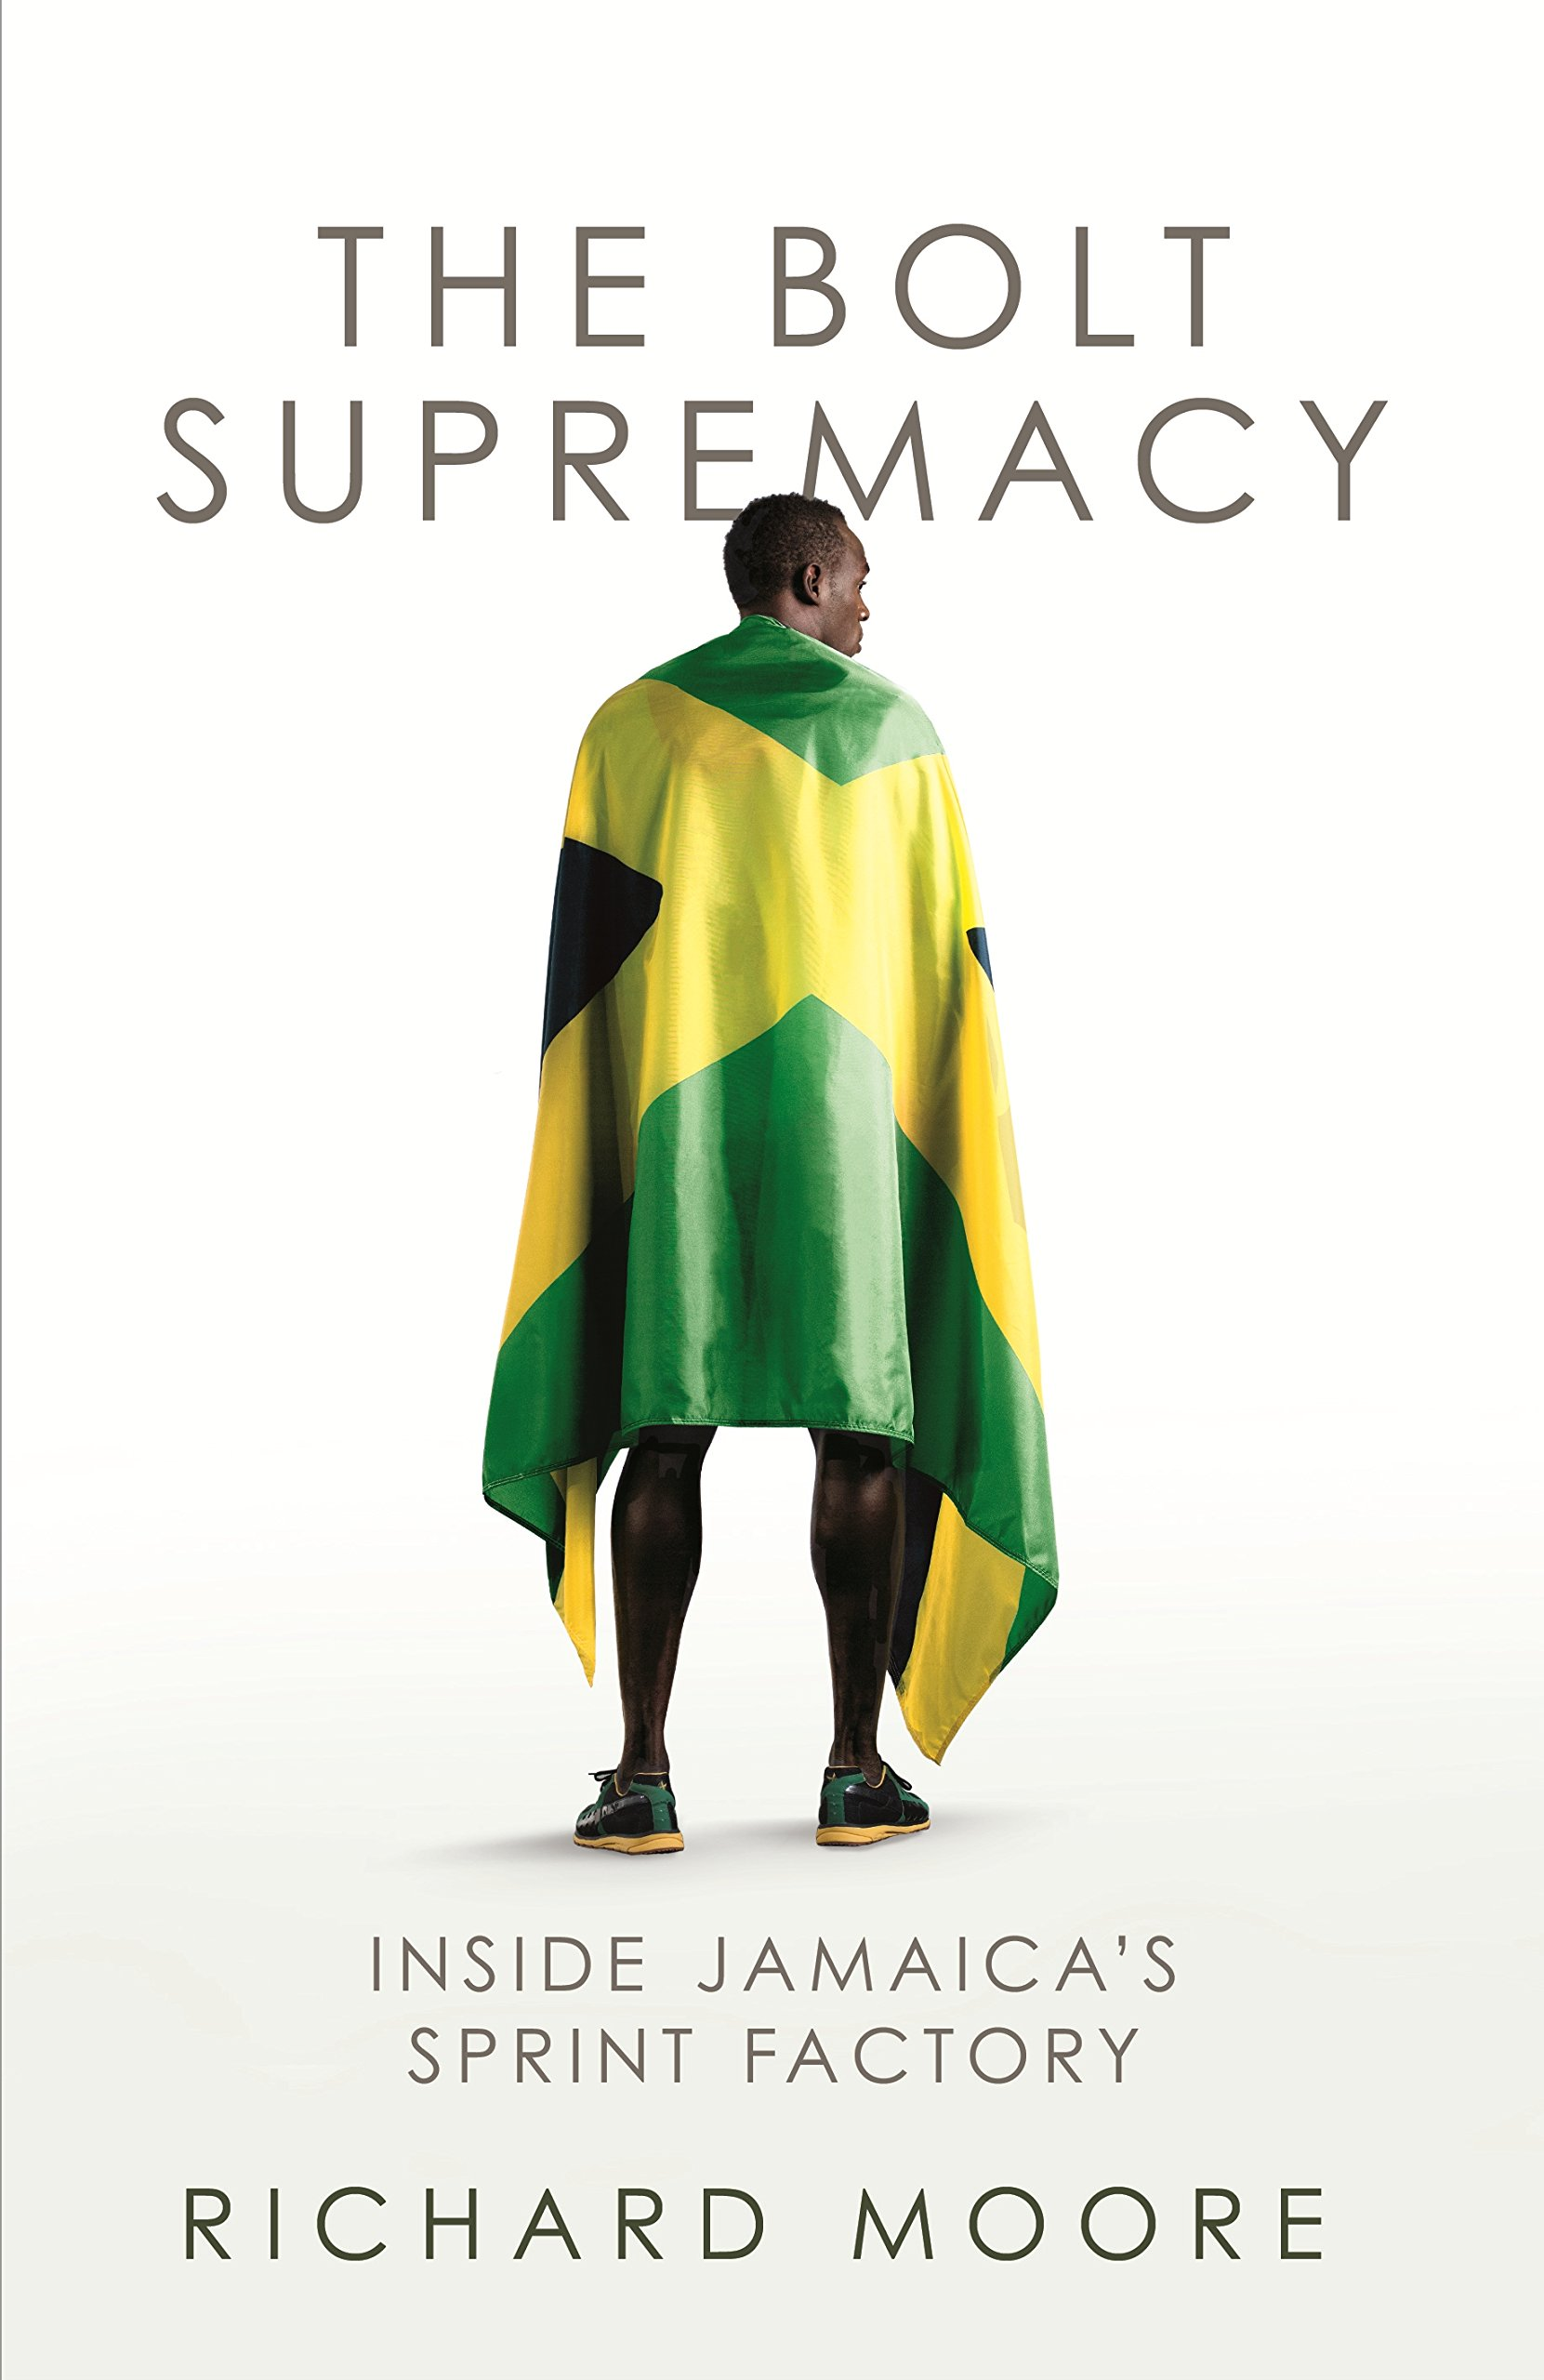 Buy The Bolt Supremacy Inside Jamaica's Sprint Factory Book Online at Low  Prices in India | The Bolt Supremacy Inside Jamaica's Sprint Factory  Reviews ...